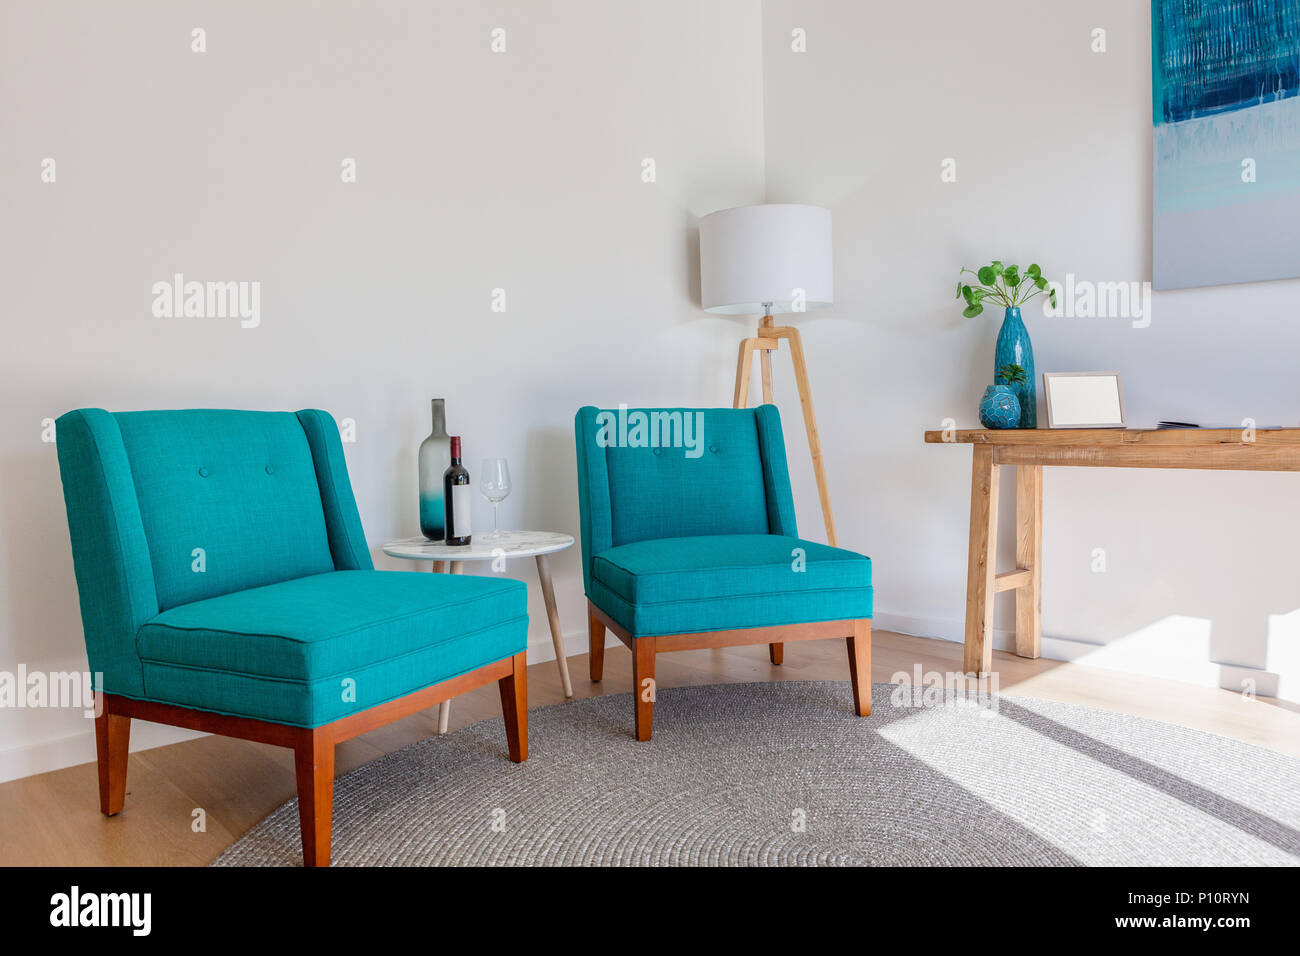 Scandinavian furniture interior with copy space armchairs small tables and lamp under natural sunlight